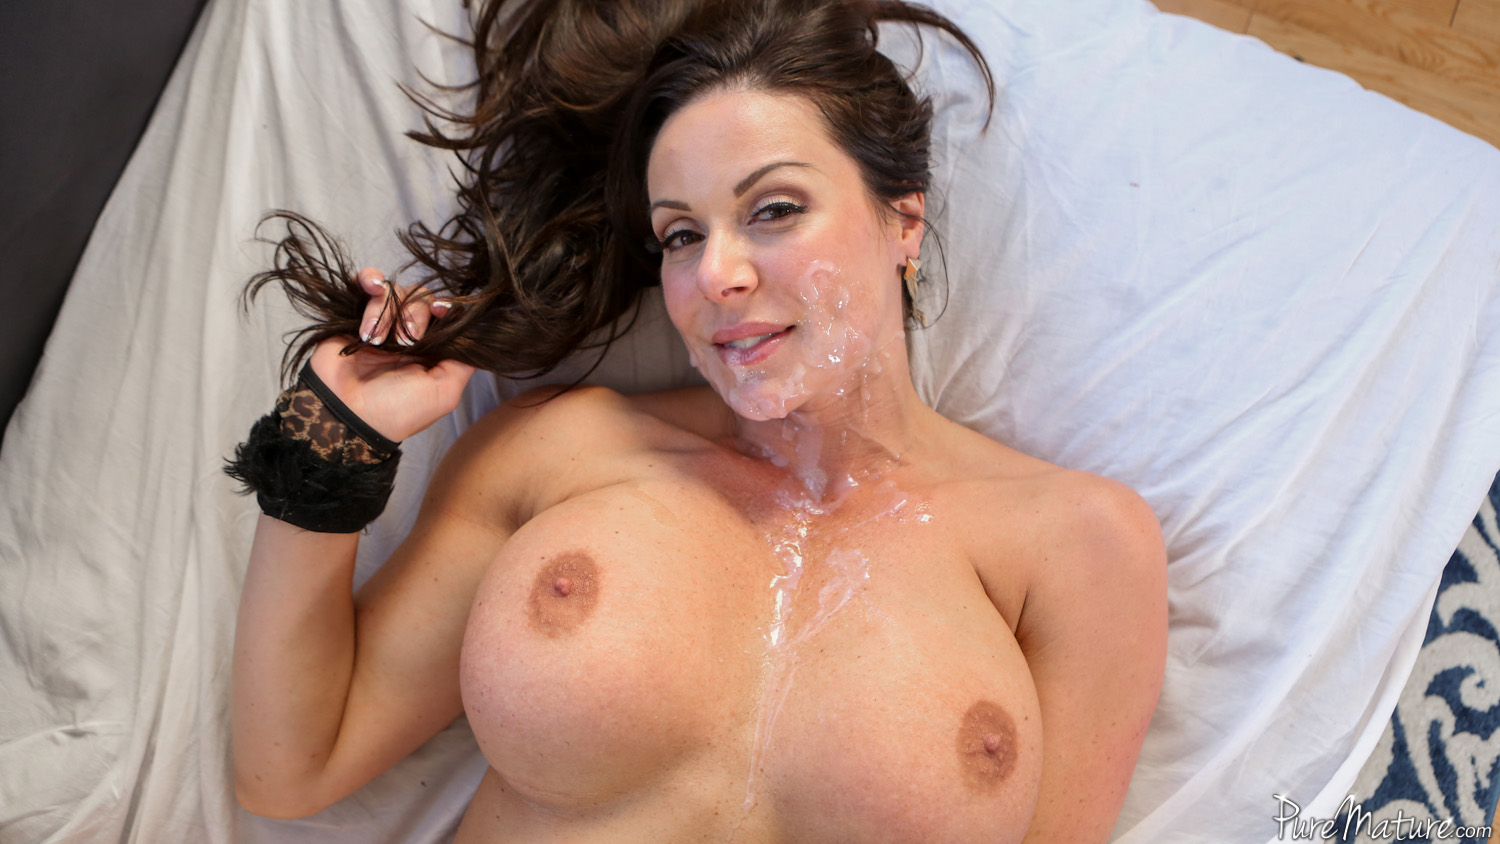 gallery of kendralust091714 - hd milf porn movies - pure mature